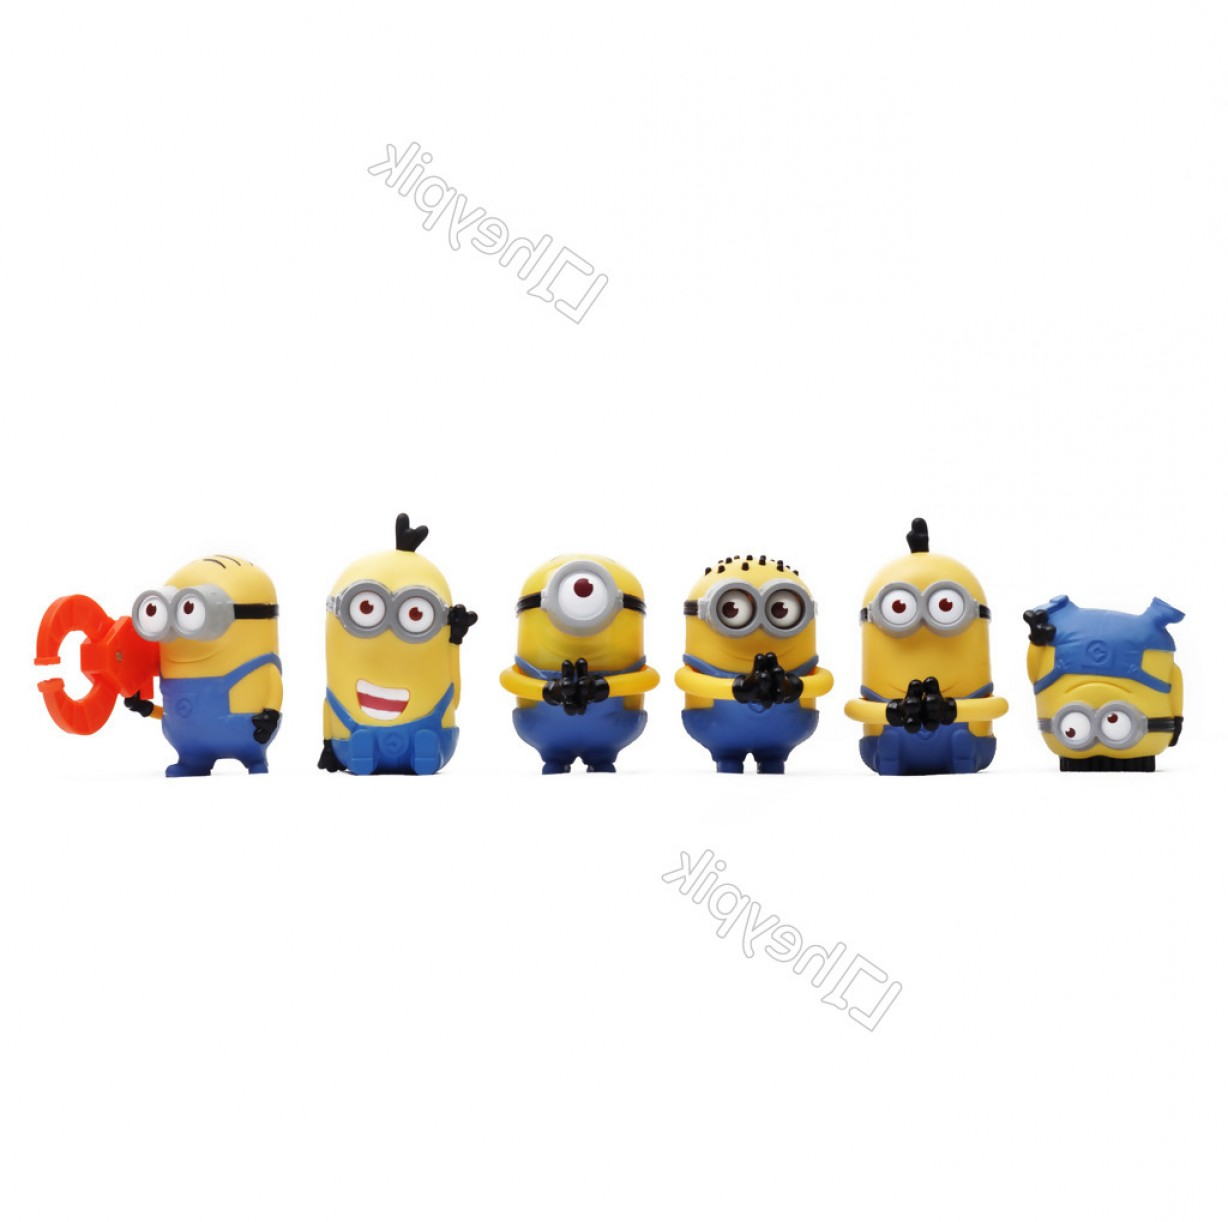 Animated Despicable Me Vector: Bitmap Popular Animated Animated Cartoon Character Free Vector